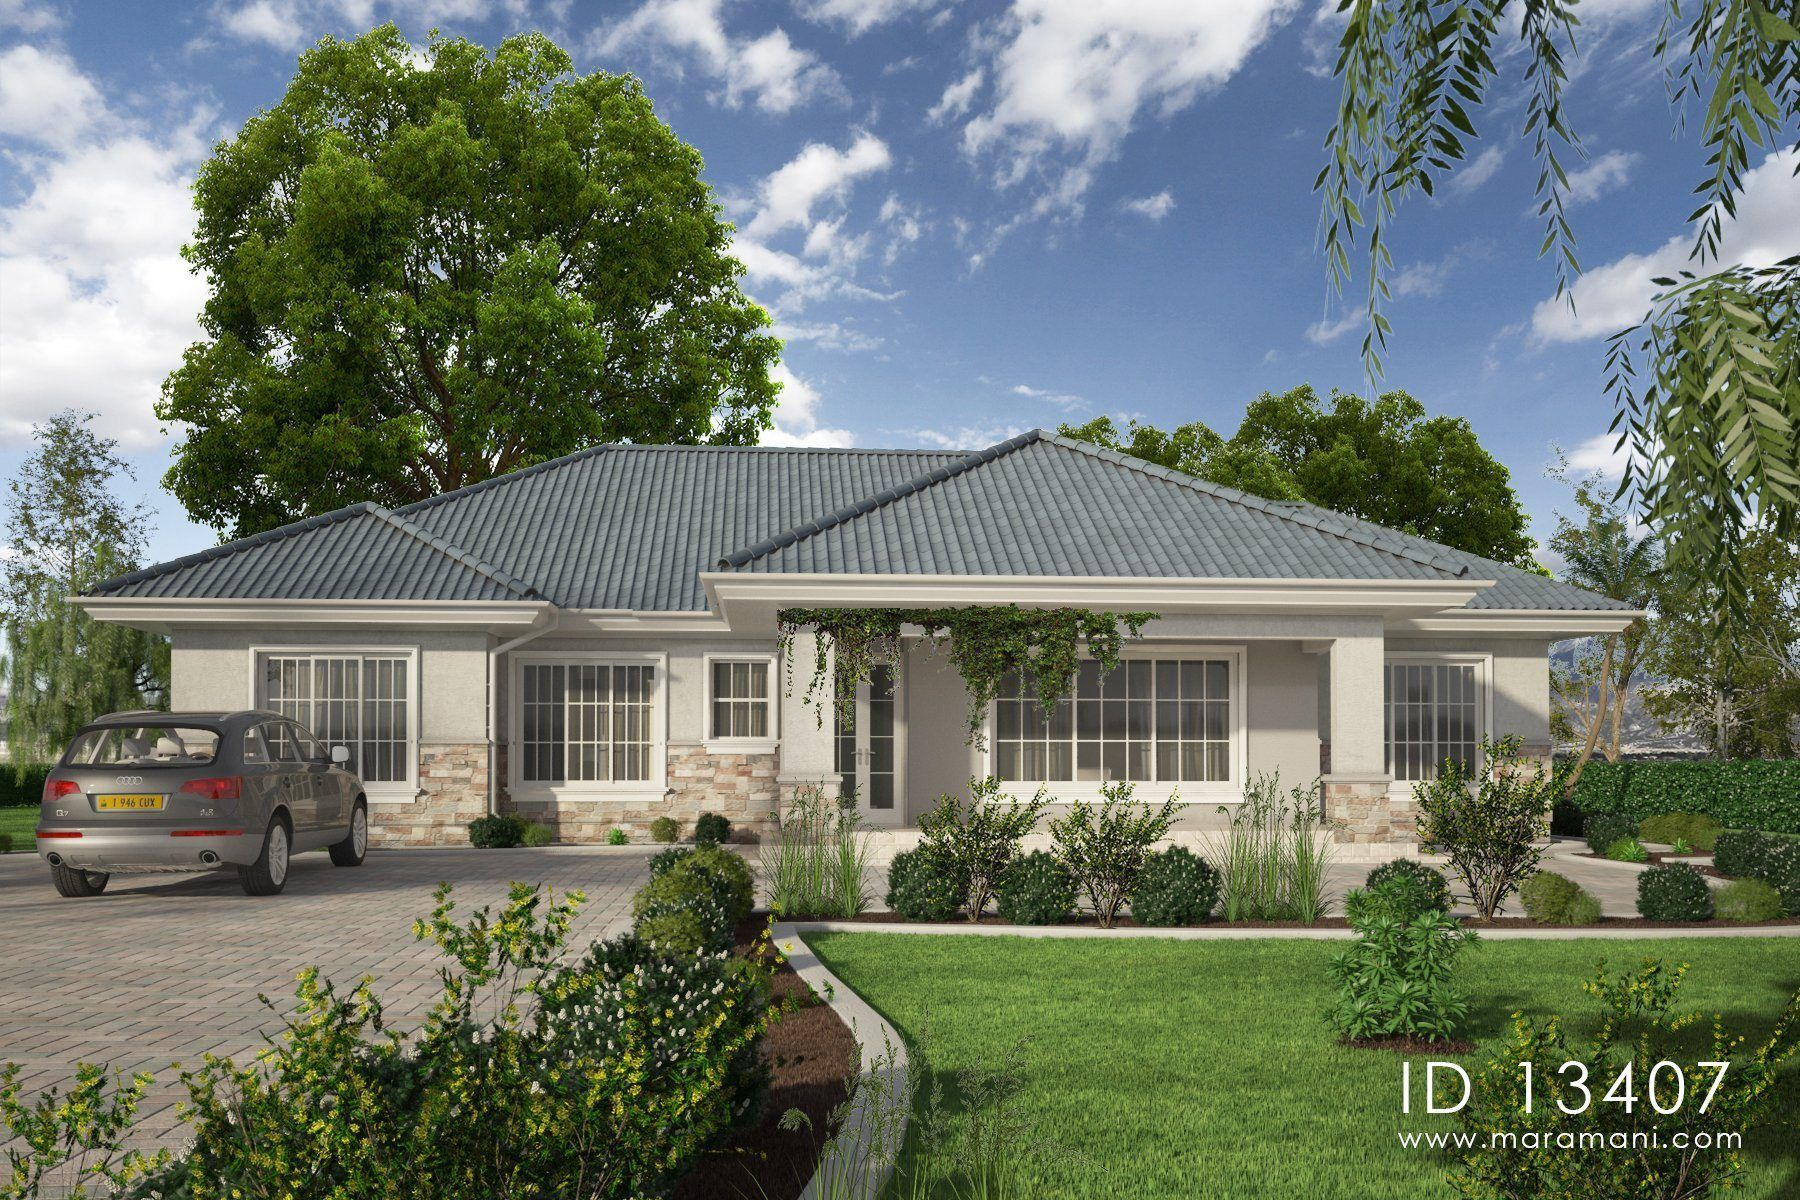 3 Bedrooms Country House Id 13407 House Designs By Maramani Architectural House Plans Traditional House Plans Beach House Plans